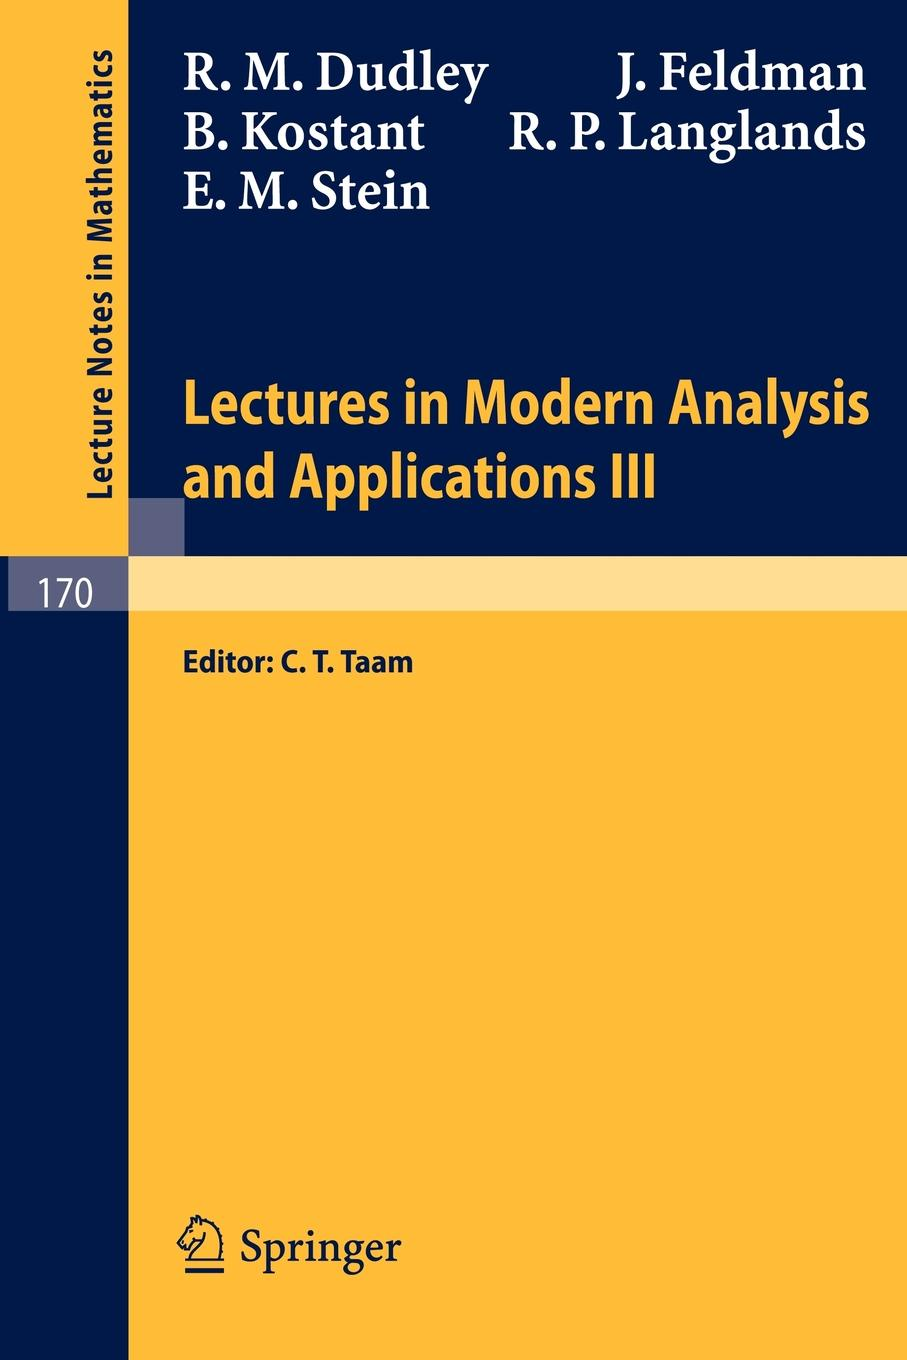 R. M. Dudley, J. Feldman Lectures in Modern Analysis and Applications III shelemyahu zacks modern industrial statistics with applications in r minitab and jmp